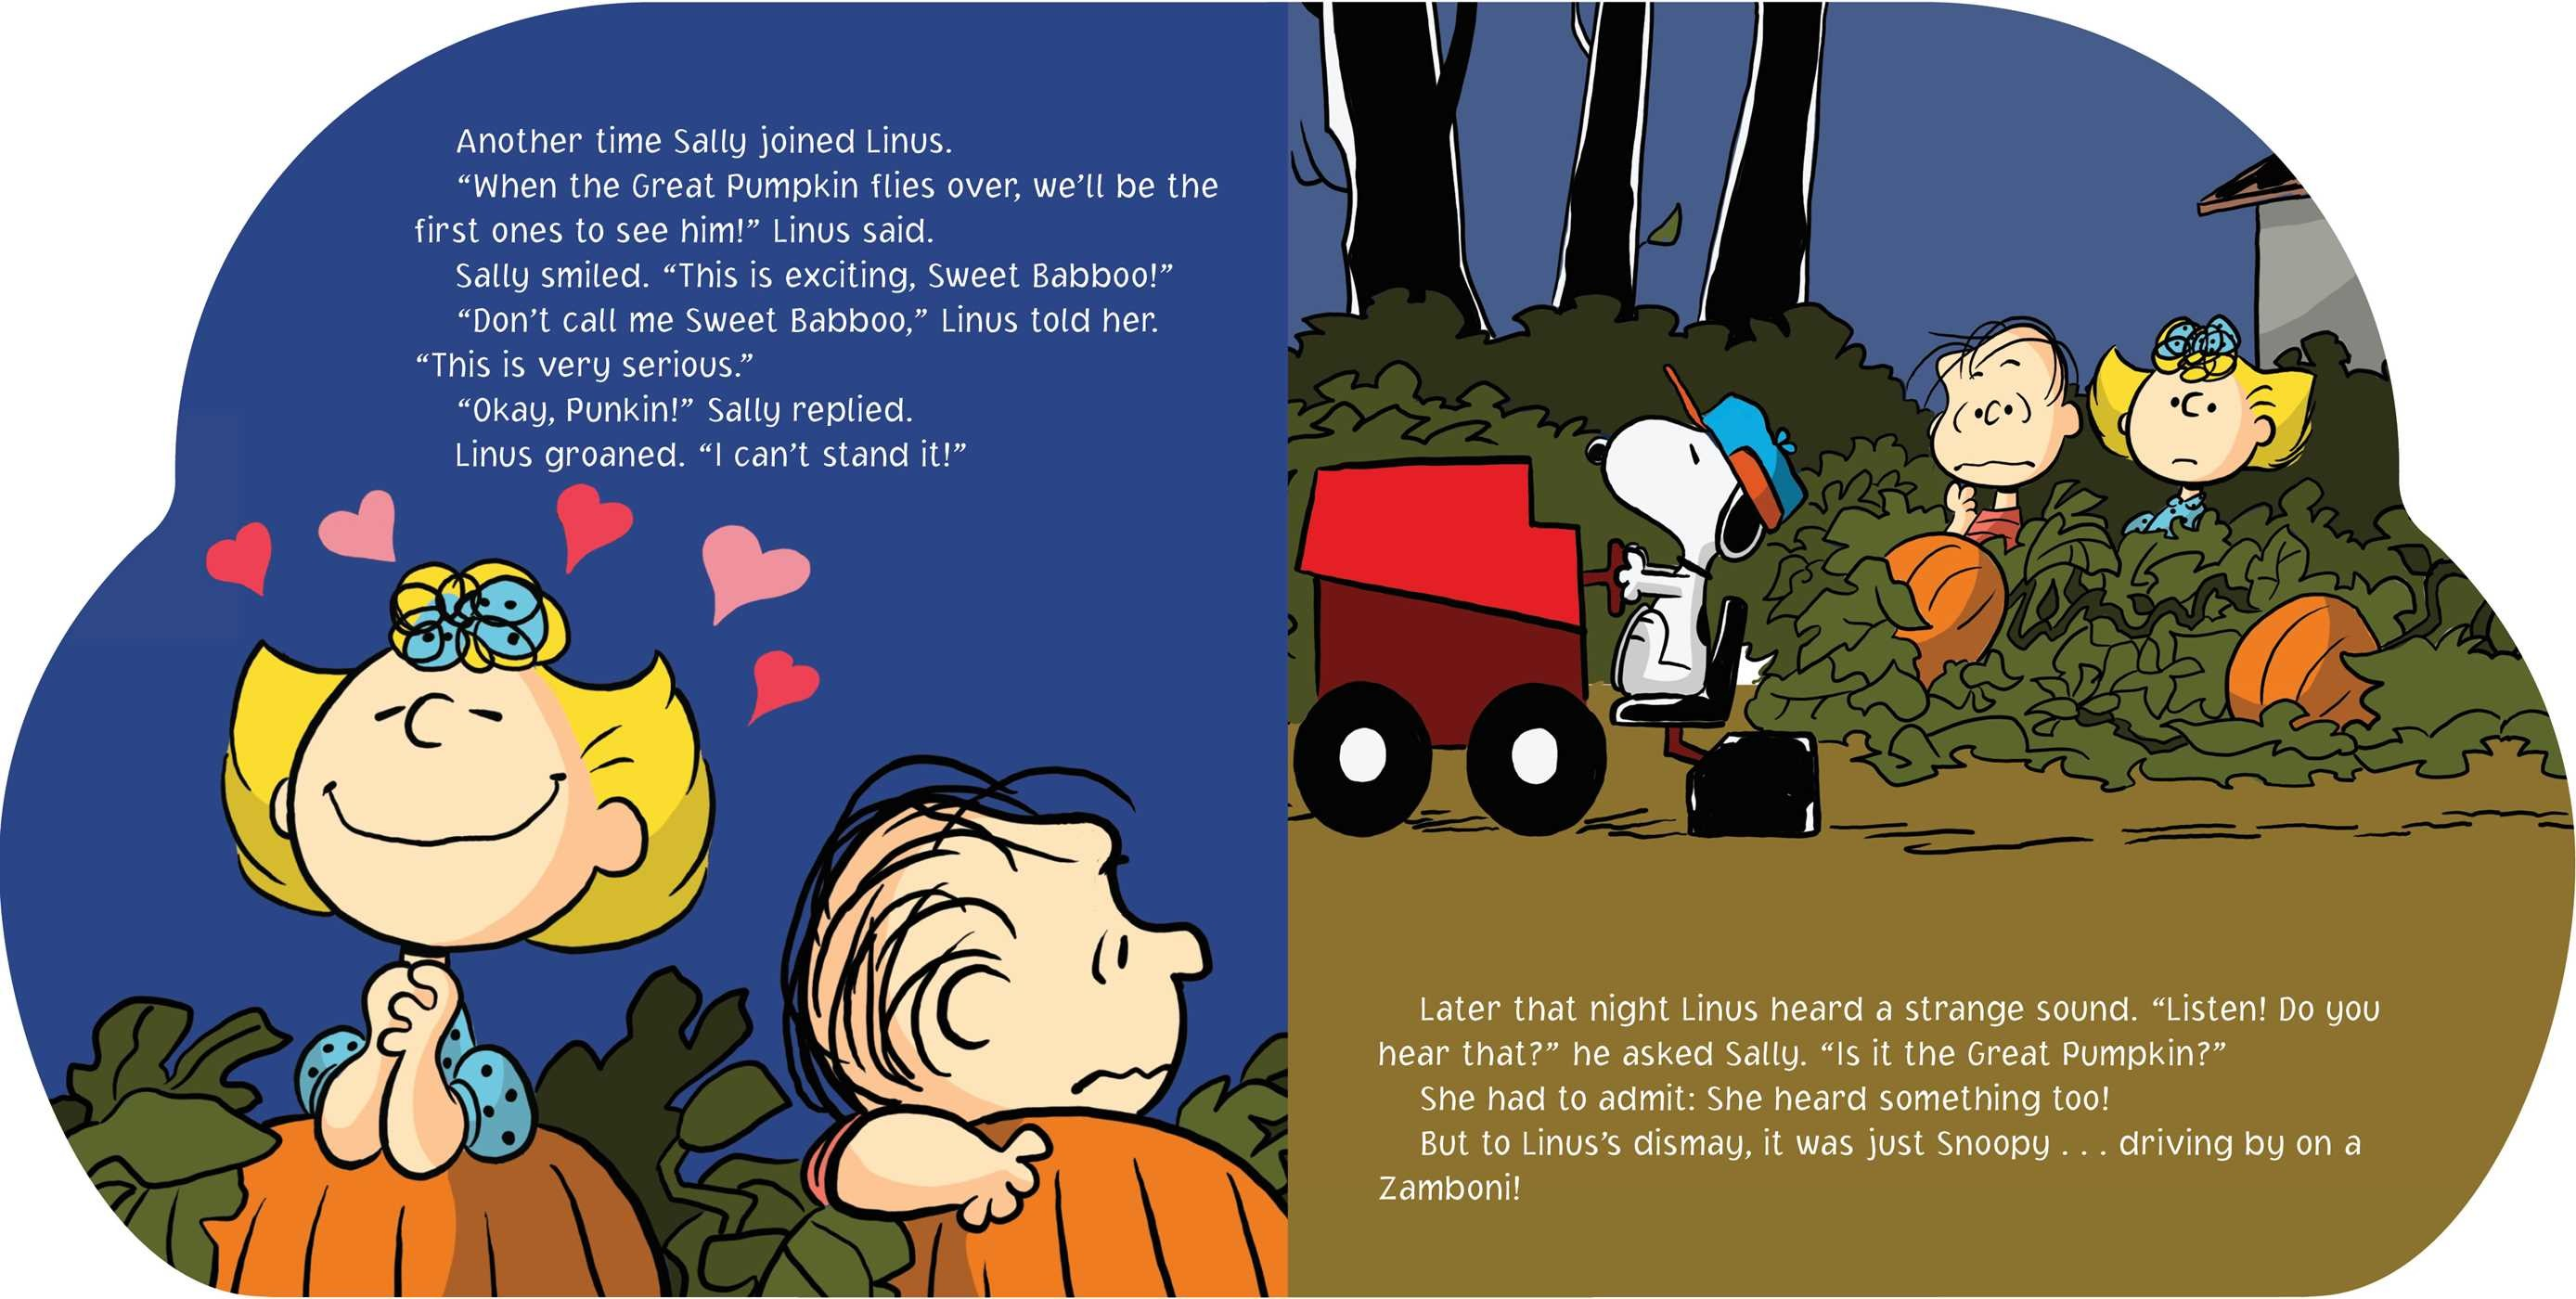 The legend of the great pumpkin 9781481496285.in01